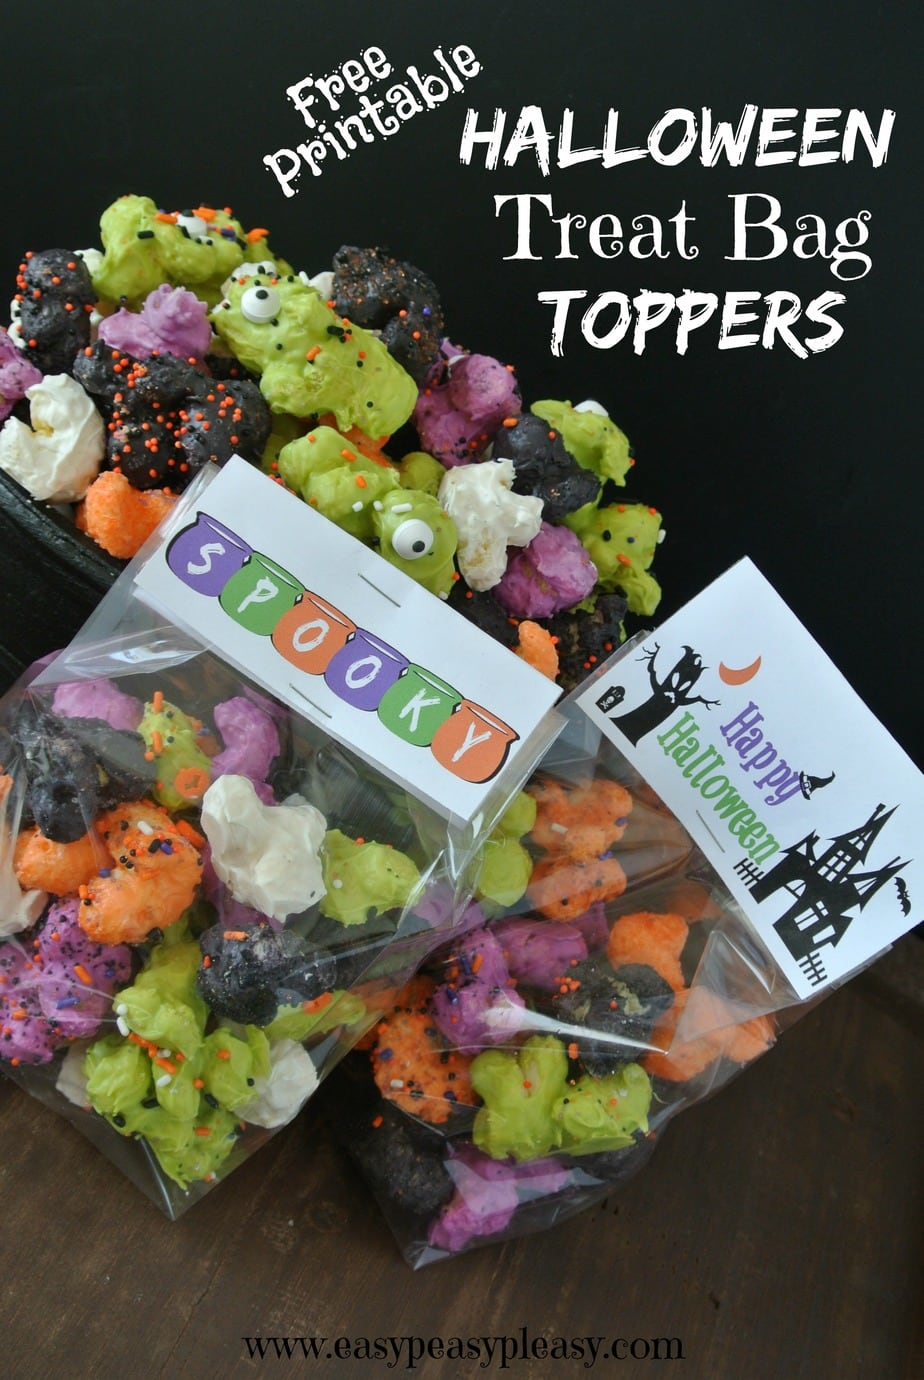 Want to add a little Spooky to your Halloween Treat Bags Print these free treat bag toppers for your Halloween goodie bags.